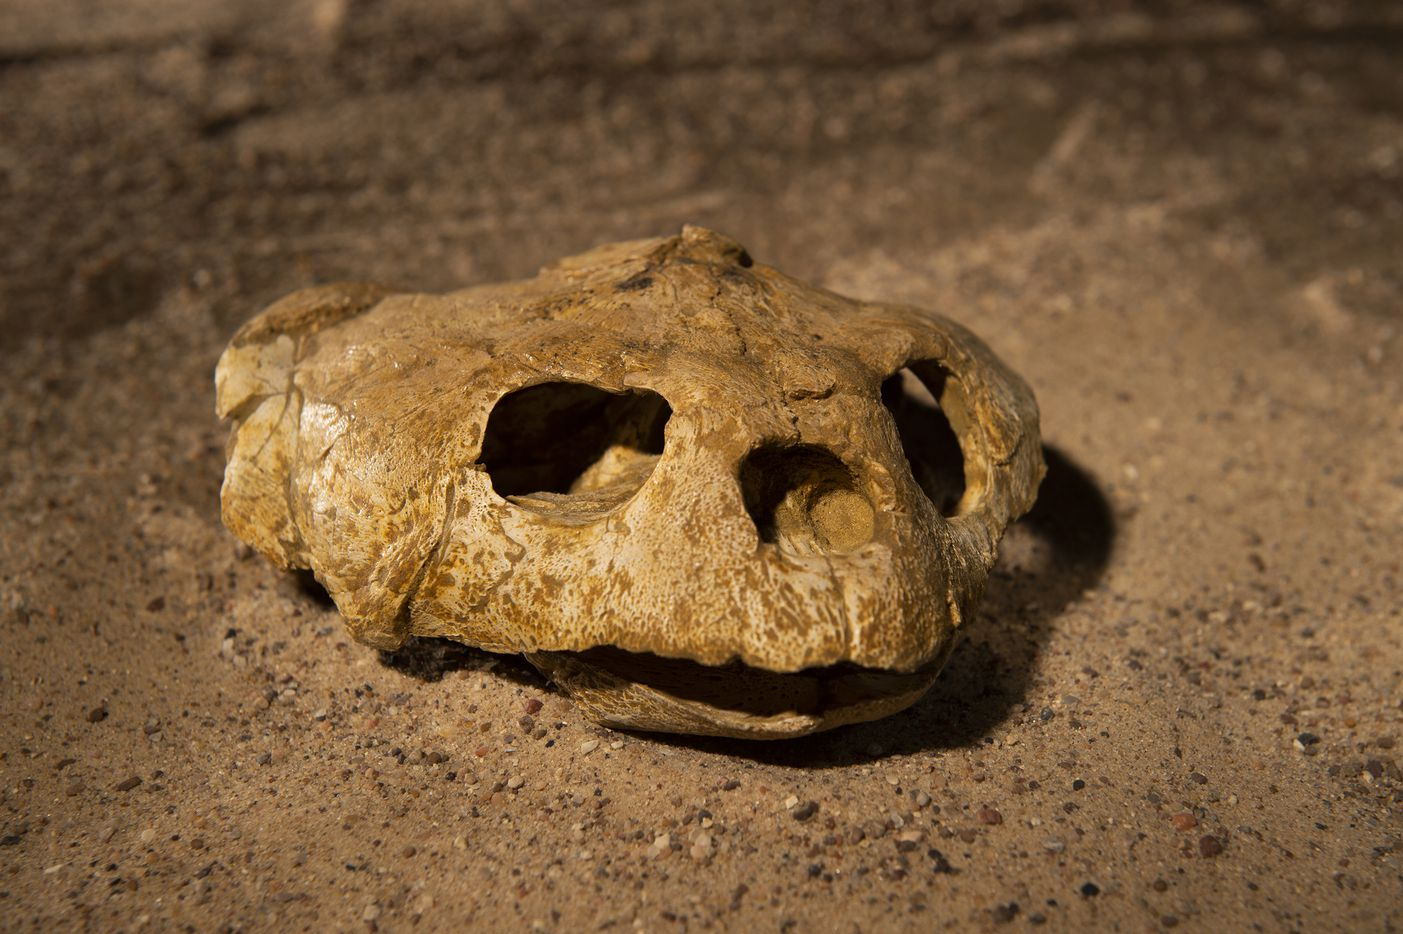 A fossil of a Euclastes sea turtle skull excavated from Angola's costal cliffs.  Unlike mosasaurs and plesiosaurs, sea turtles still swim in the ocean today. However, this ancient 72-million-year-old giant was not the same species as modern sea turtles. Sea turtles survived the end-Cretaceous mass extinction 66 million years ago thanks to their ability to live under the stressful conditions of a global extinction event with little food and oxygen. But today, human activities threaten six of the world'€™s seven sea turtle species.